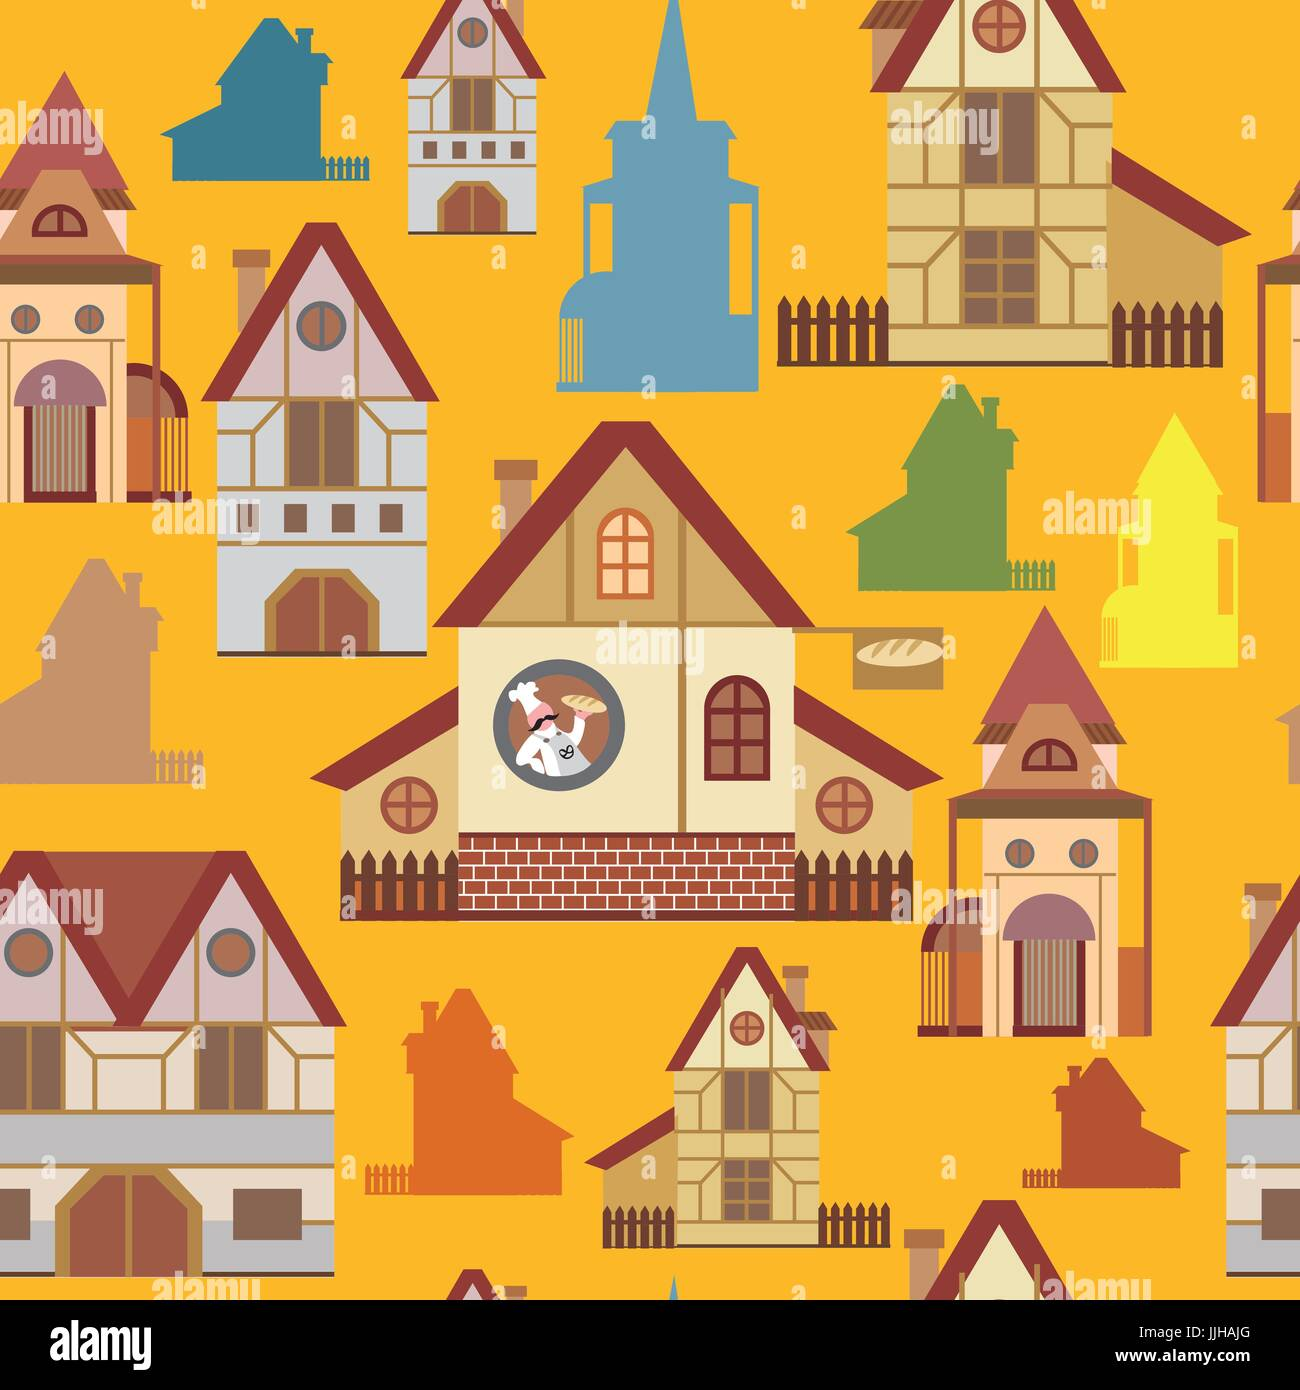 Seamless pattern with colorful cartoon houses in European style on yellow background - Stock Vector